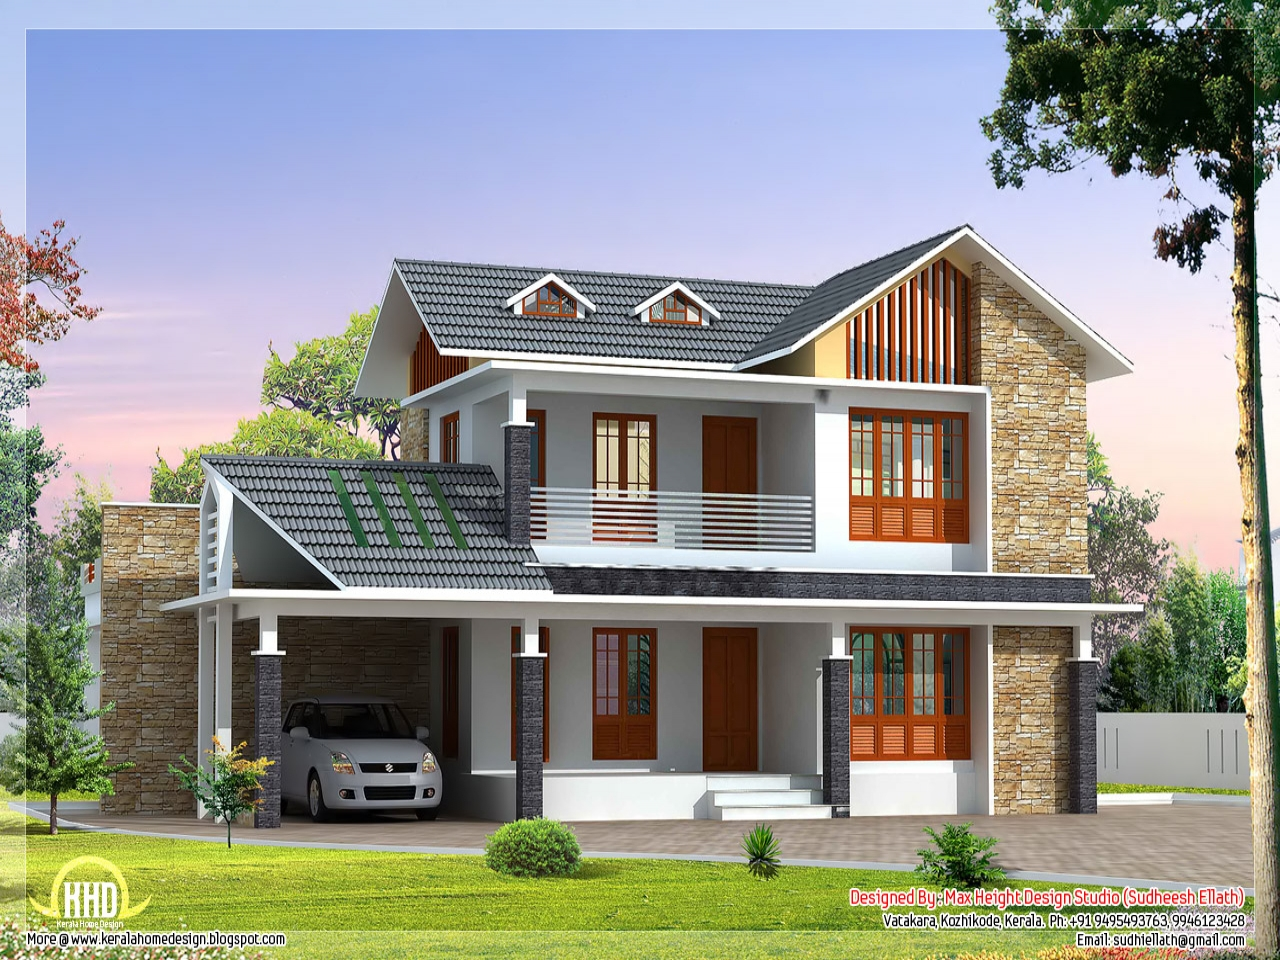 Small house exterior design beautiful villa house designs for Exterior blueprint